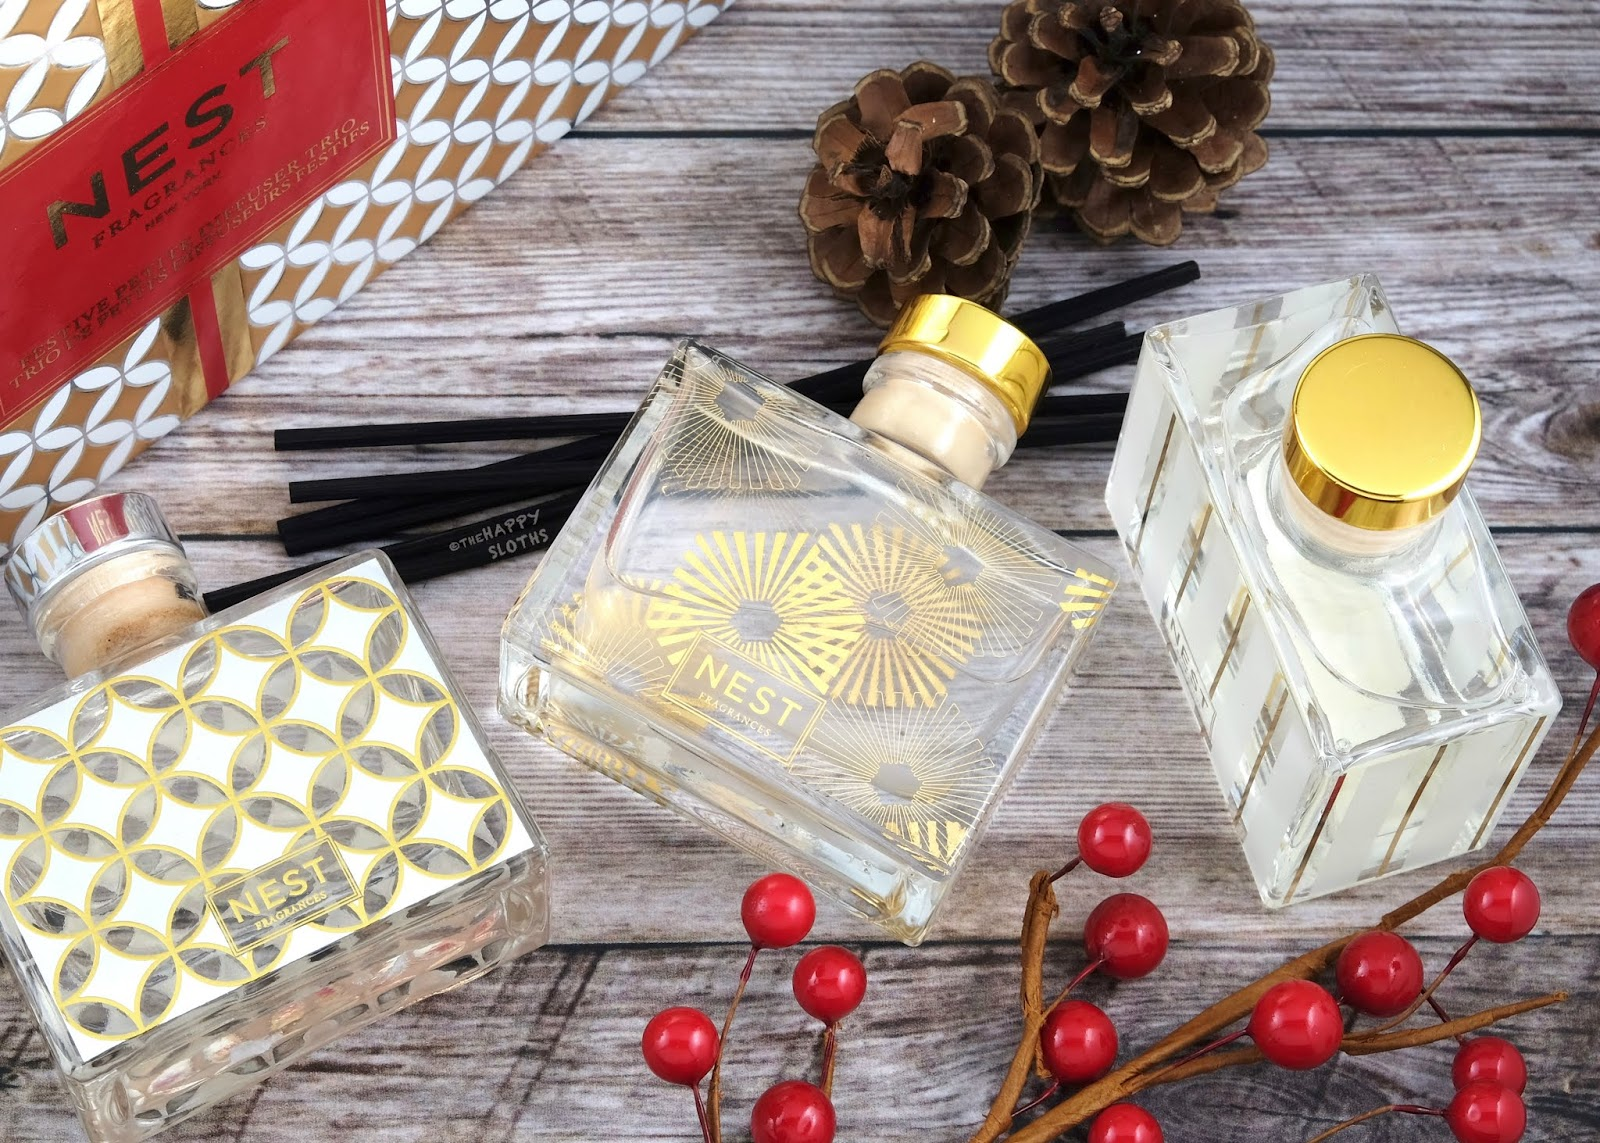 NEST Fragrances | Holiday 2019 Festive Petite Diffuser Trio: Gift Guide